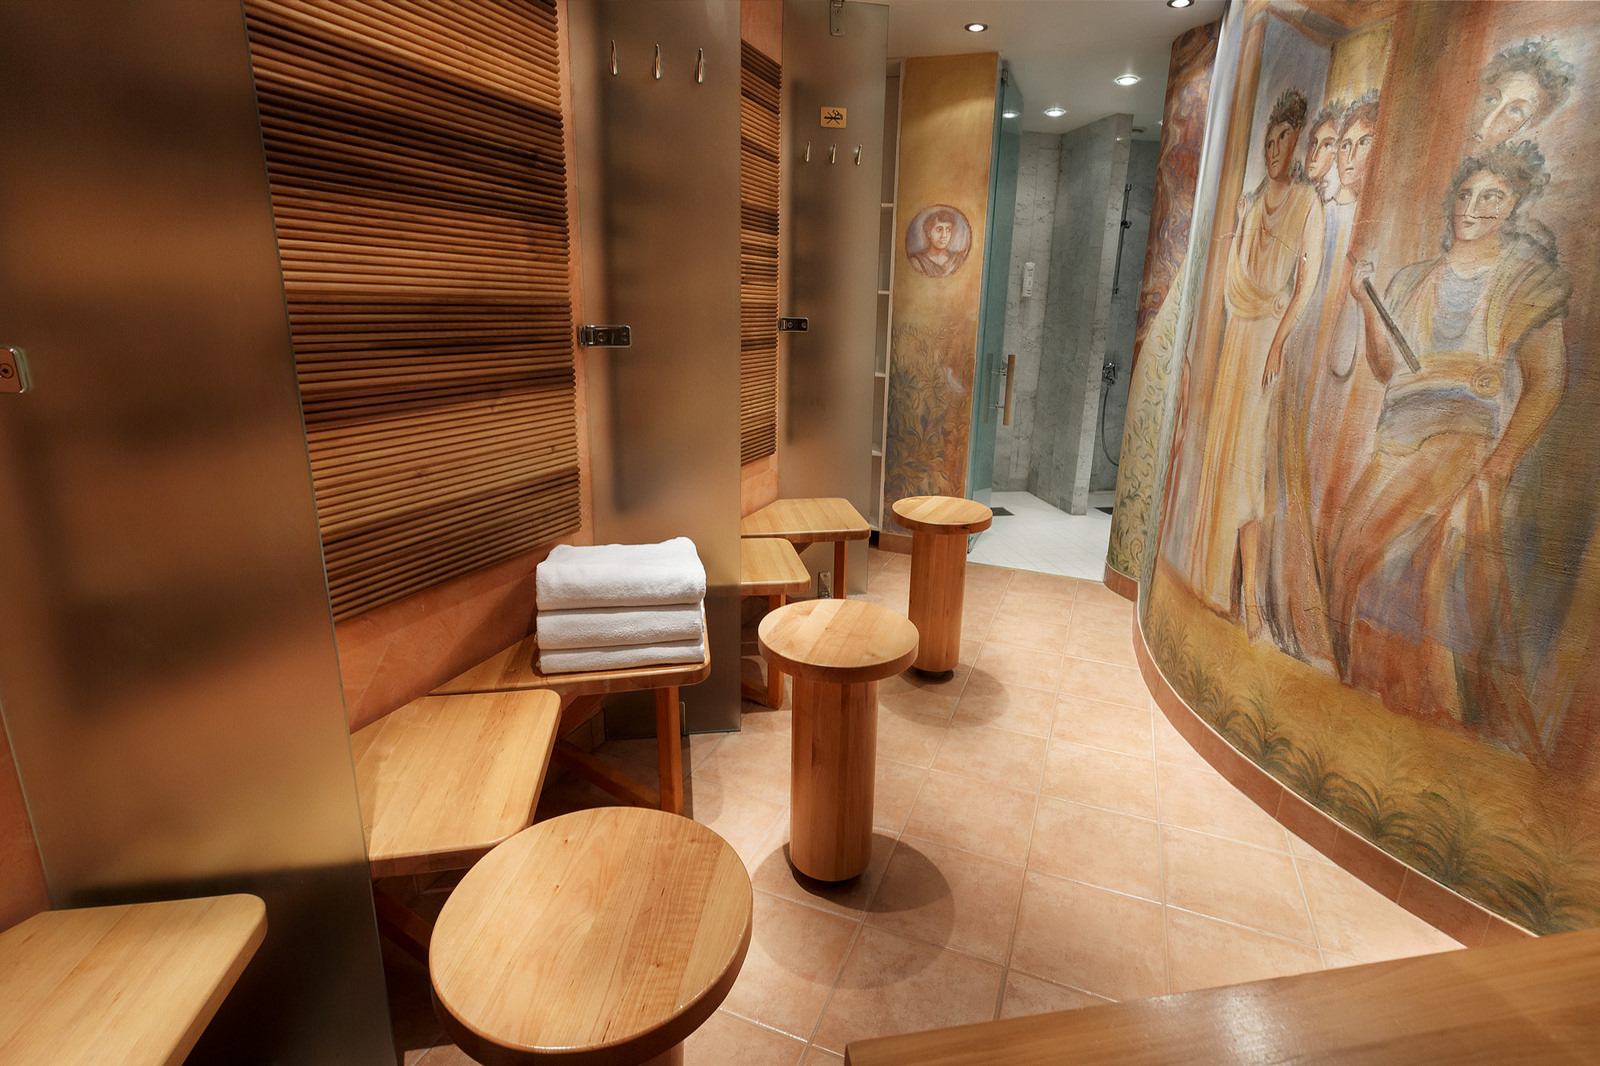 Sauna at Hotel Arthur